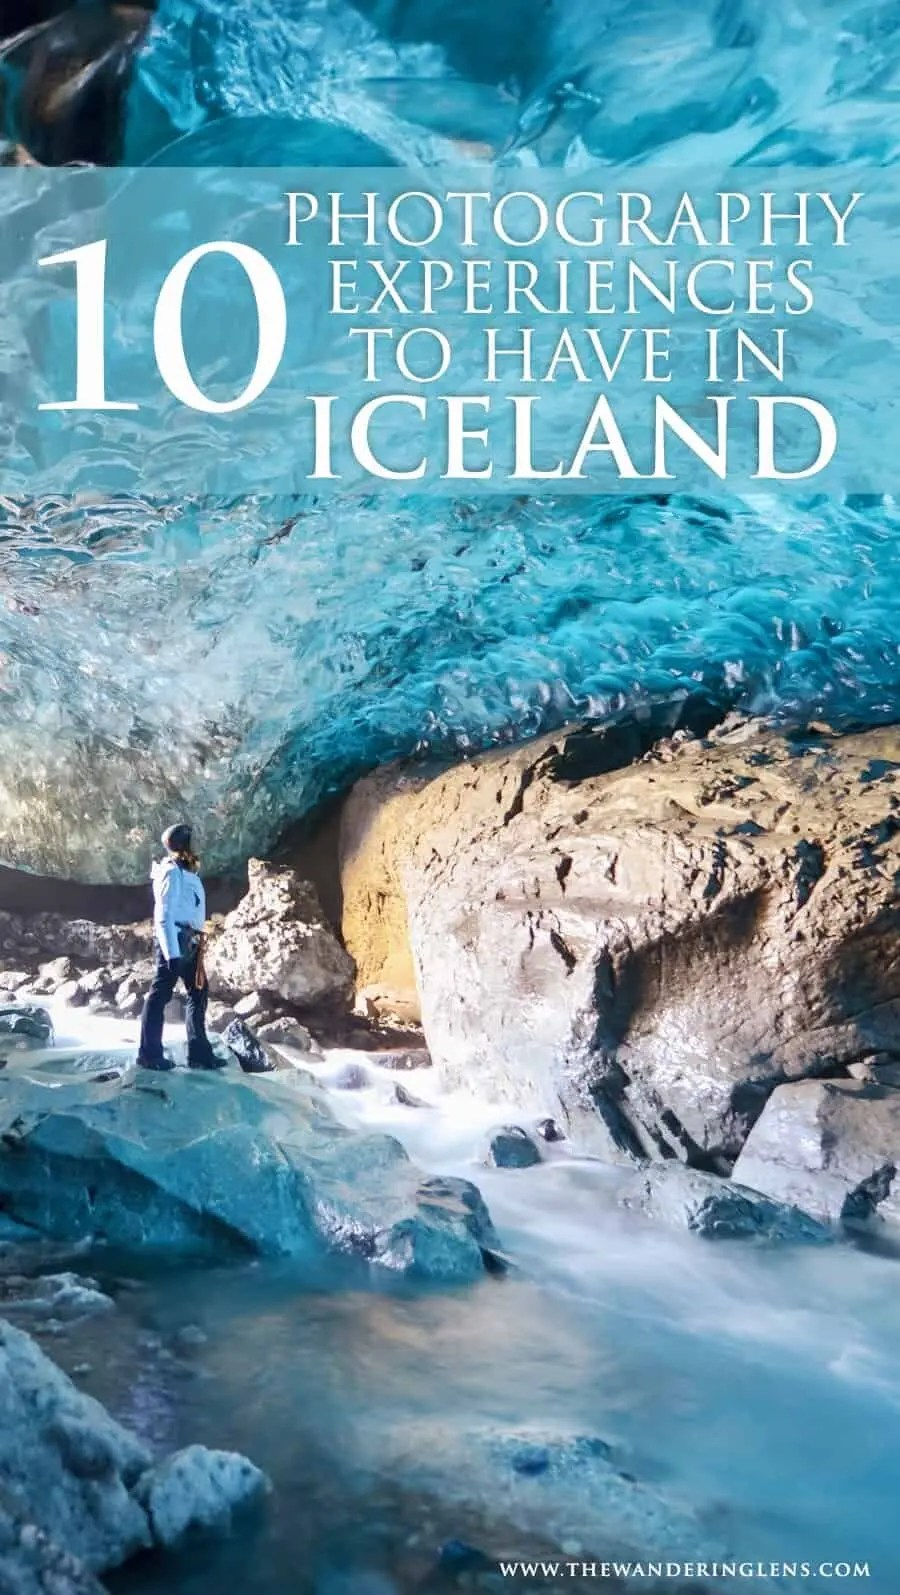 Iceland photography locations and experiences, a guide to the best things to do in Iceland